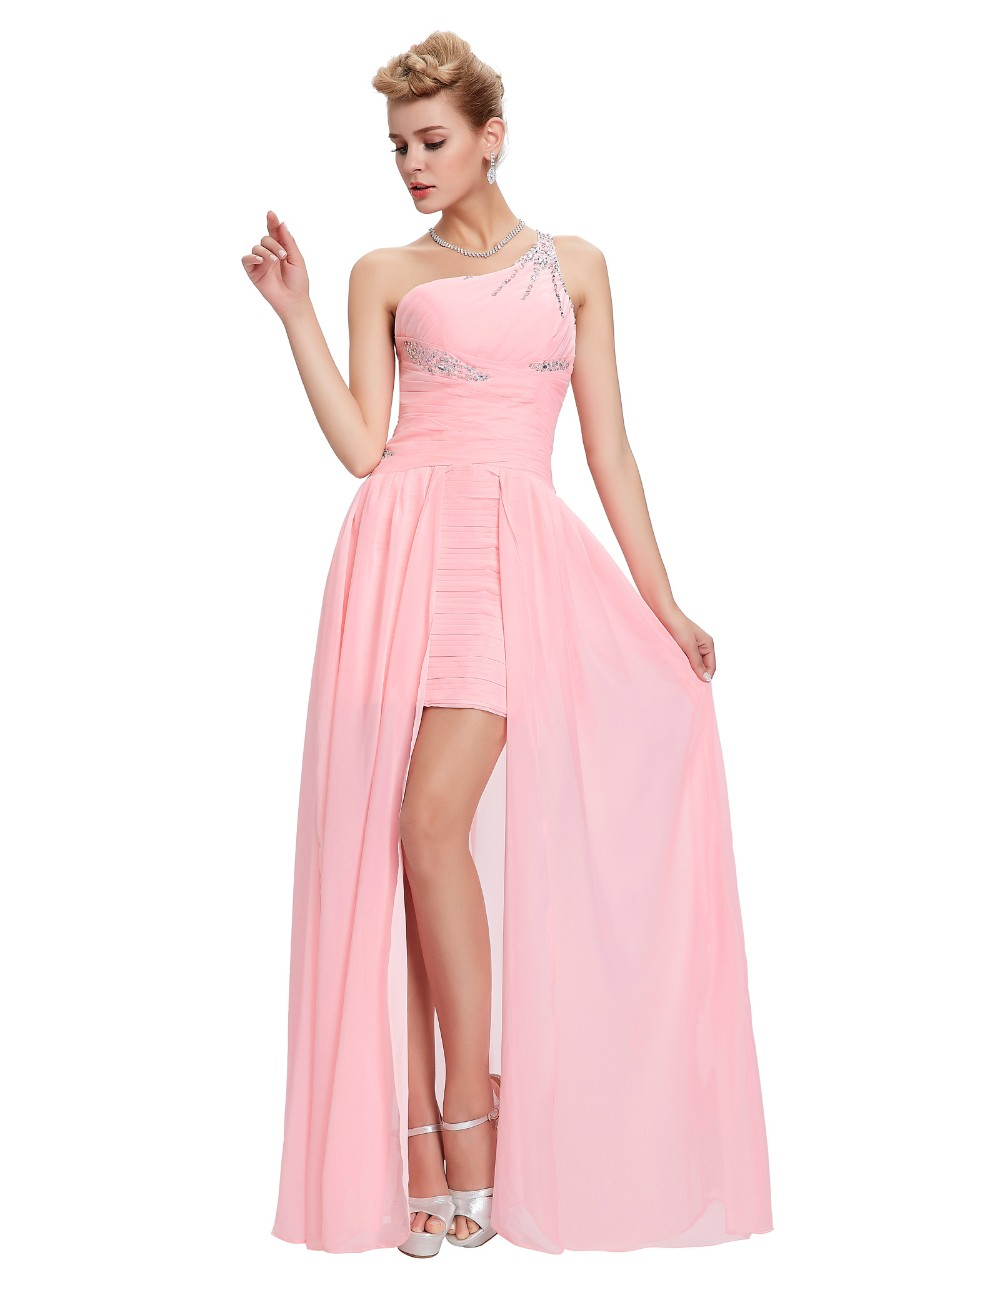 Light Pink Bridesmaid Dresses Grace Karin Beaded Chiffon One Shoulder Formal Gowns Short Front Long Back Wedding Party Dresses 9